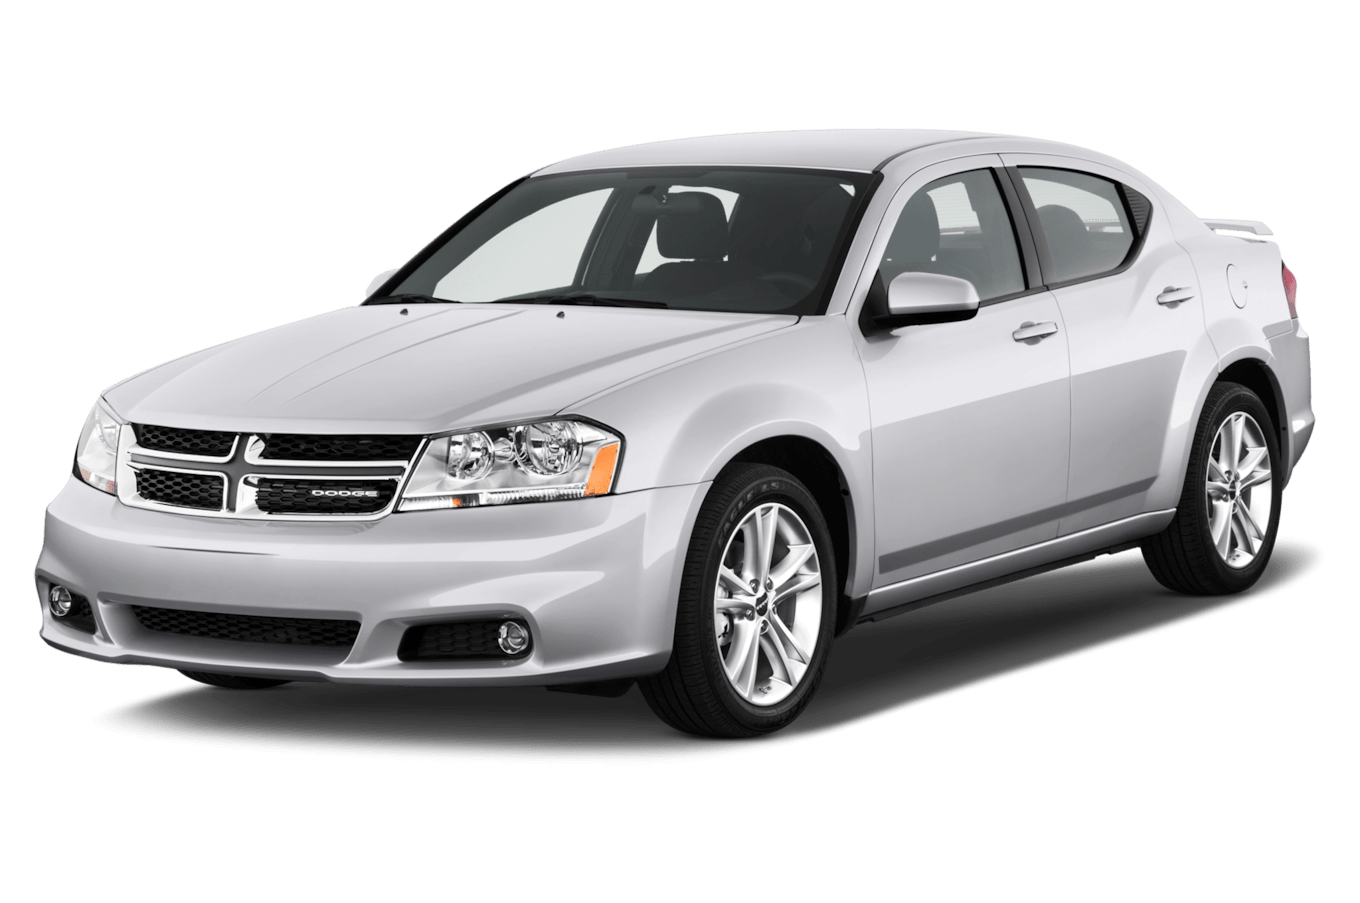 hight resolution of new 2012 dodge caravan and chrysler town country 36 fuse box 2012 dodge avenger new 2012